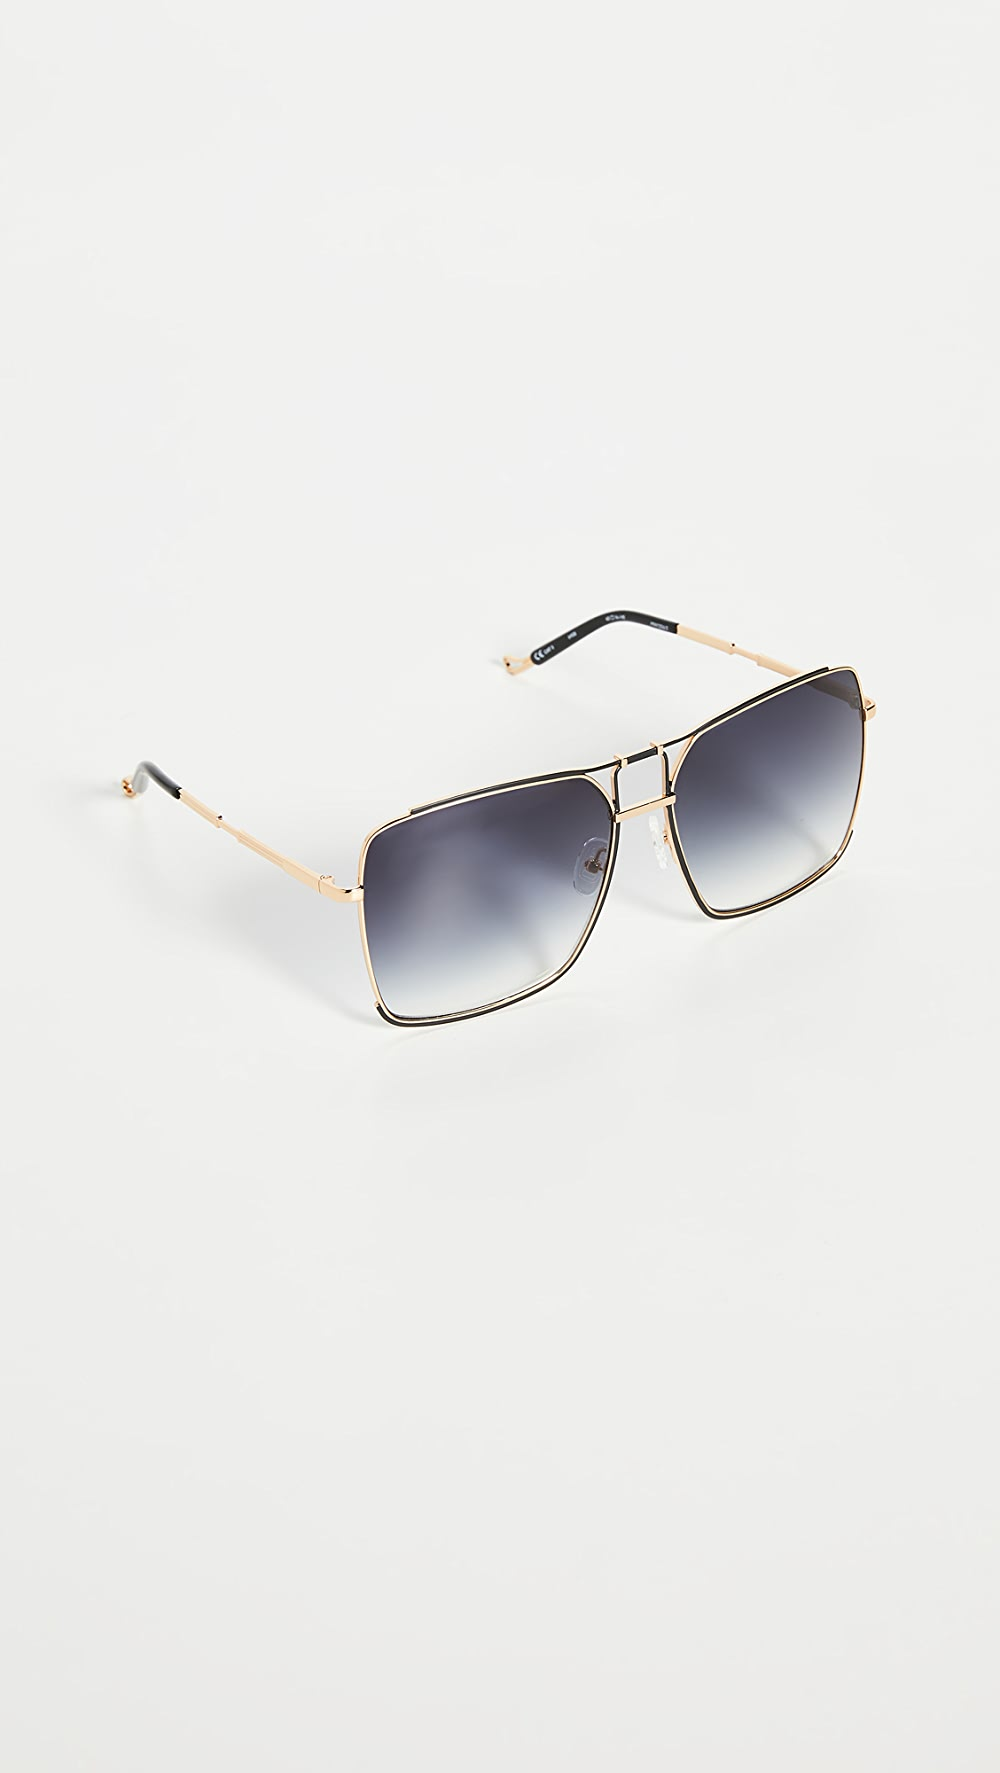 Adroit Linda Farrow Luxe - Mathew Williamson X Linda Farrow Square Sunglasses Less Expensive